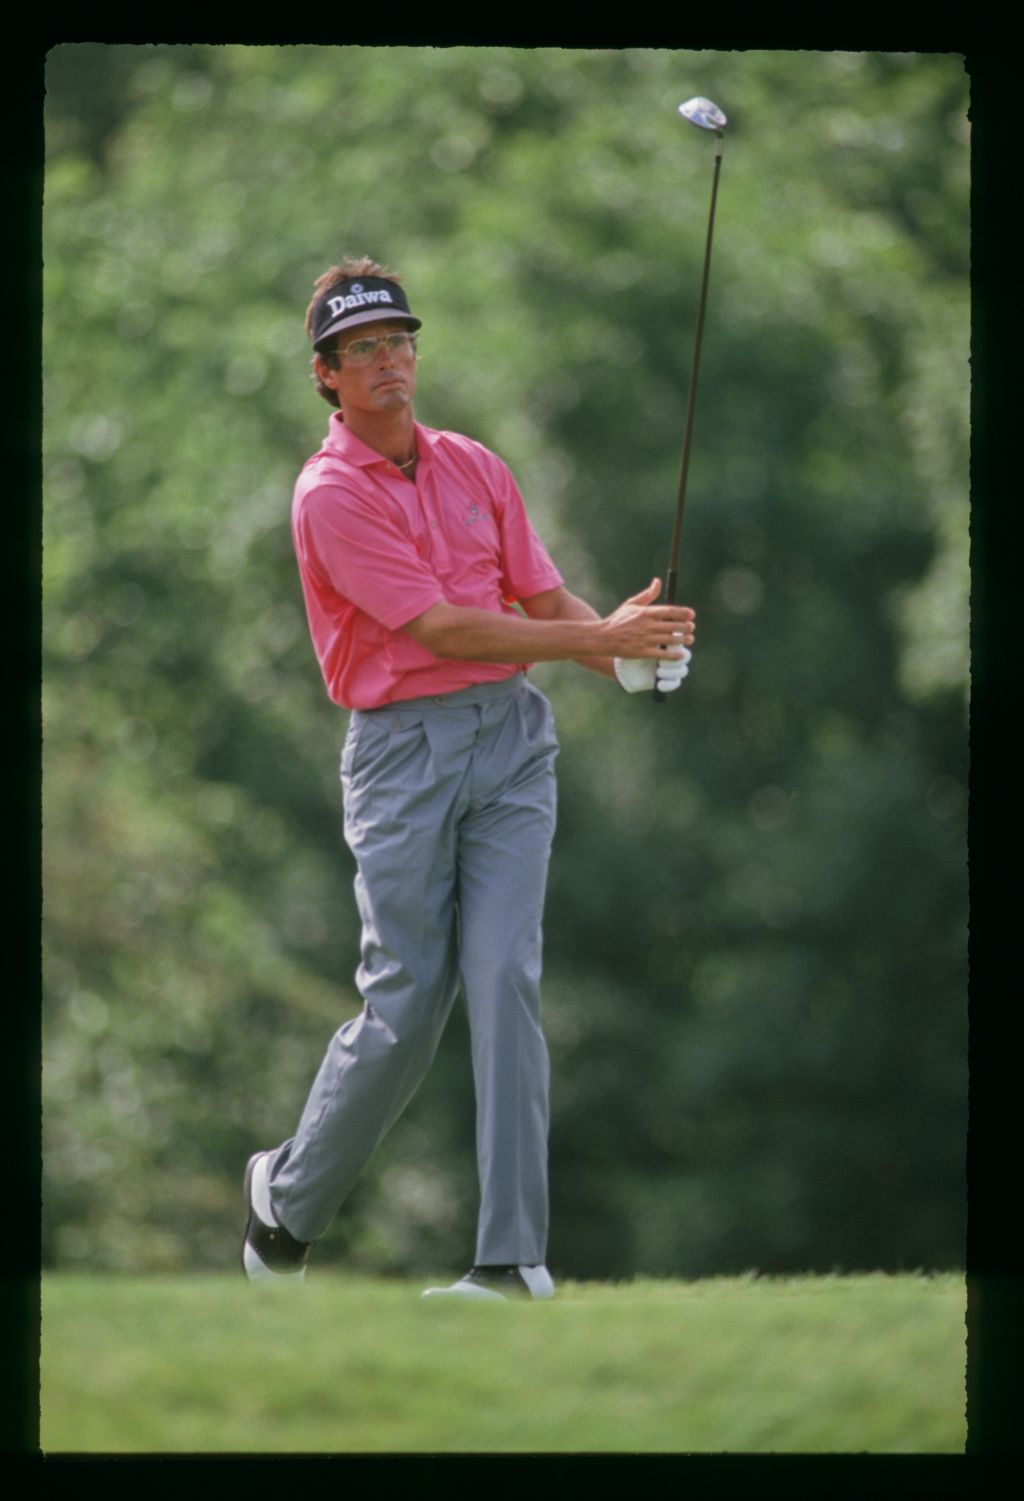 Australian golfer Ian Baker-Finch tees off at the 1991 US Open